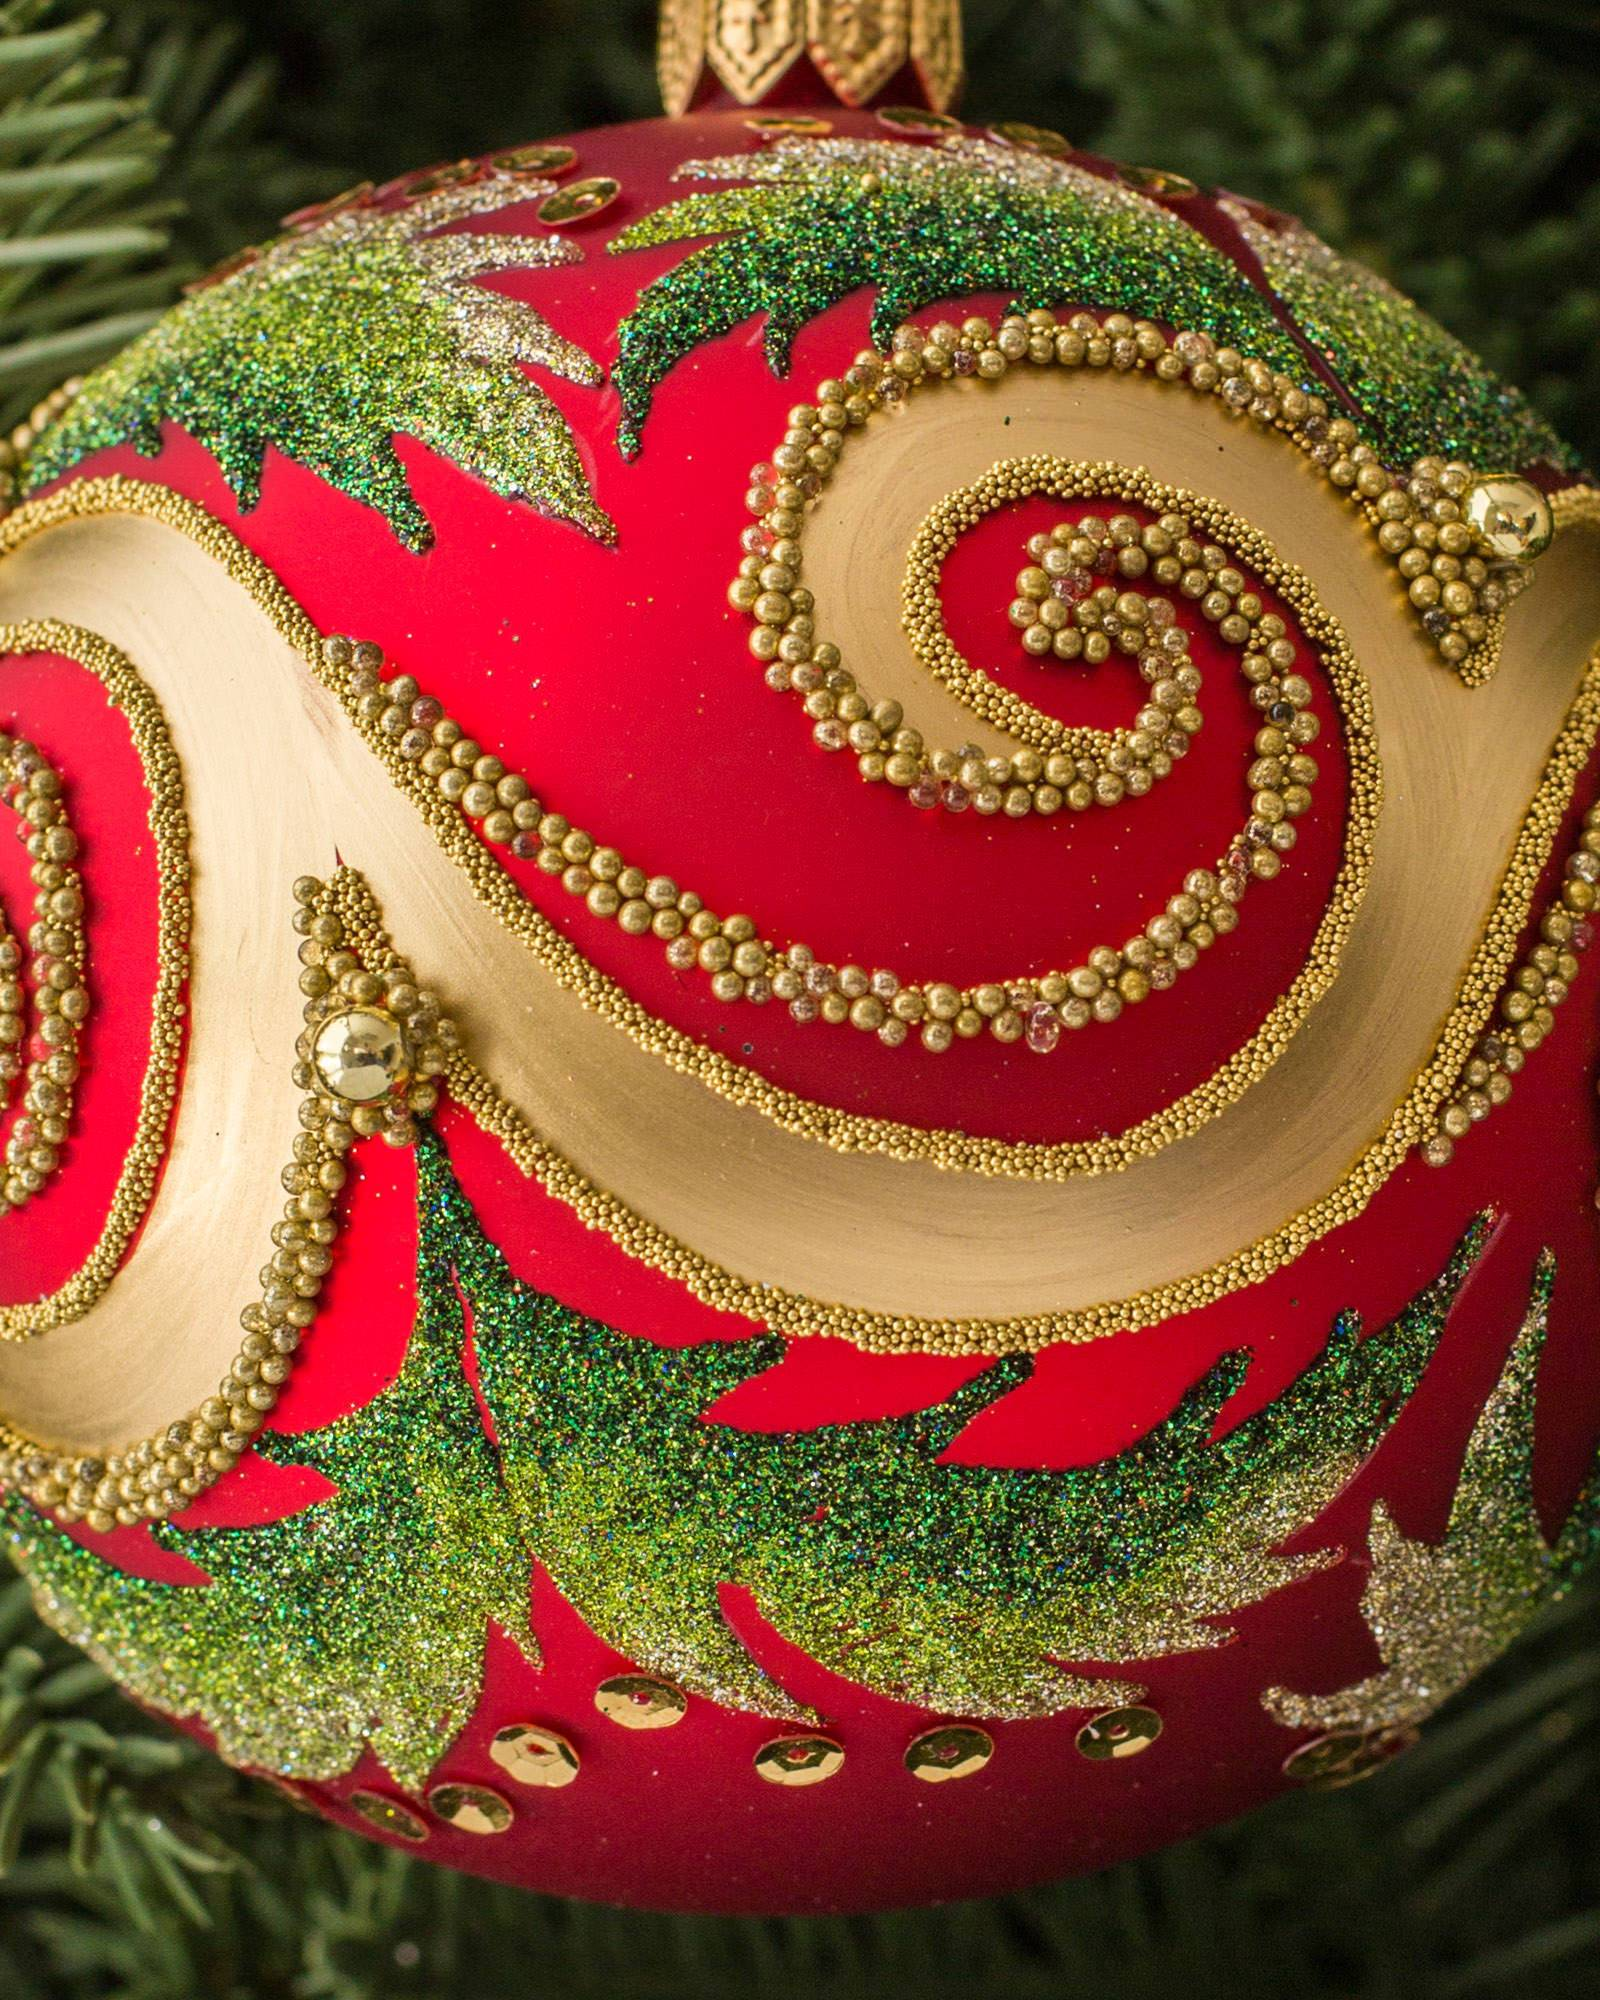 Red glass ball ornaments -  Decorated Glass Ball Ornament Set 4 Pieces Alt